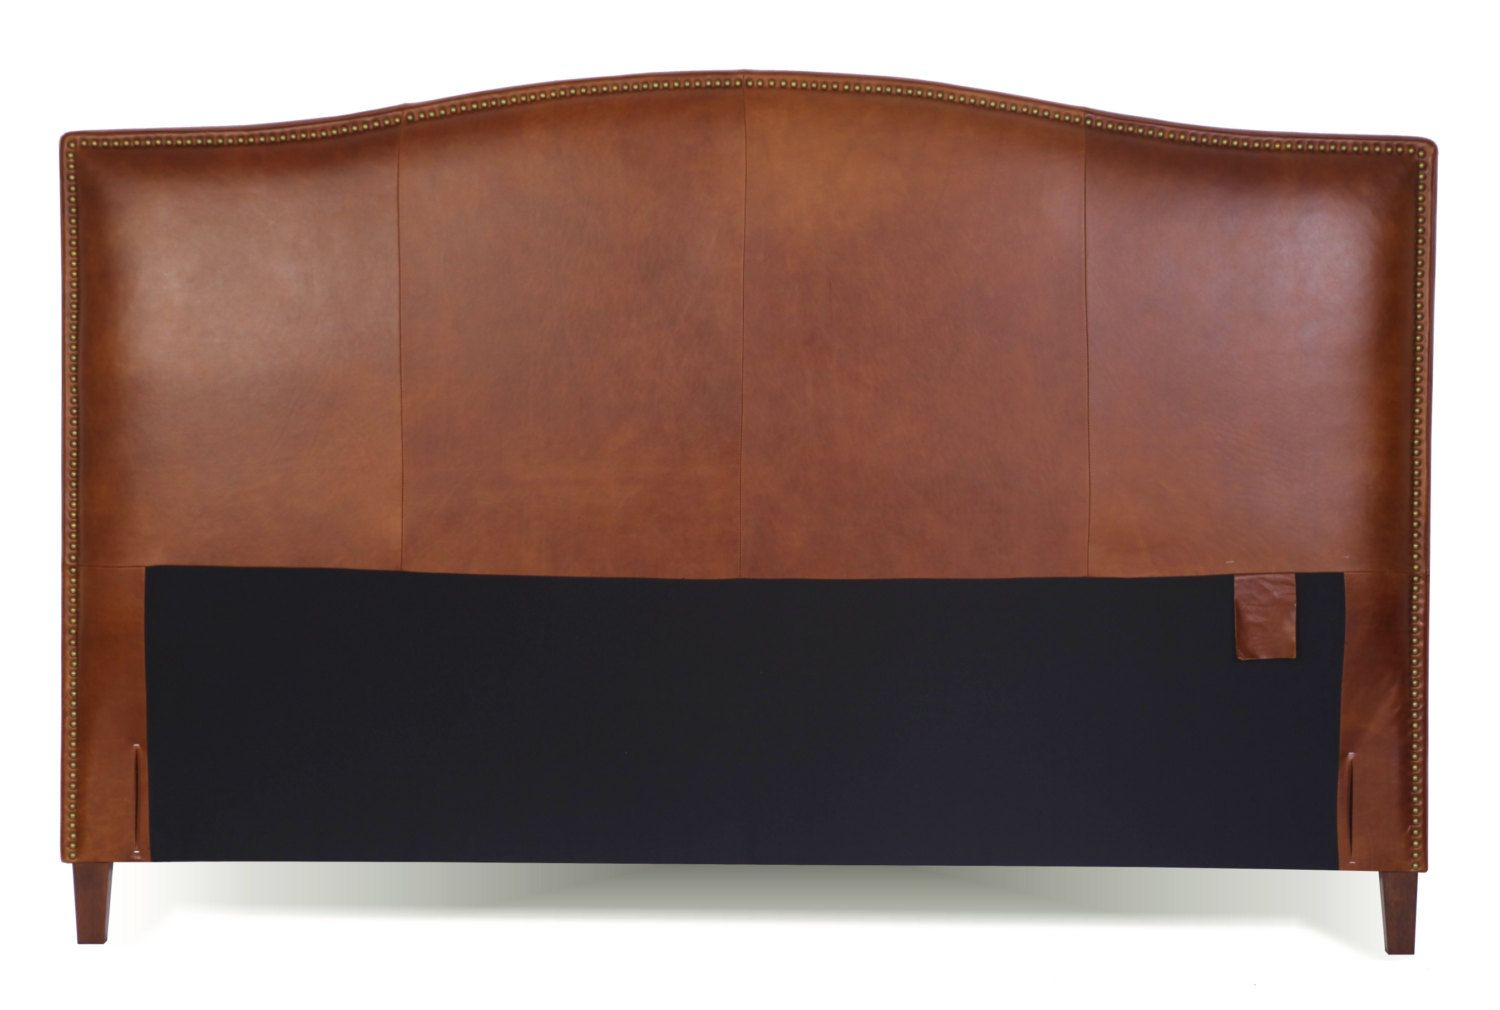 King Size Leather Headboard In Tobacco Brown By Alexalindesigns 760 00 Leather Headboard Headboard Headboards For Beds